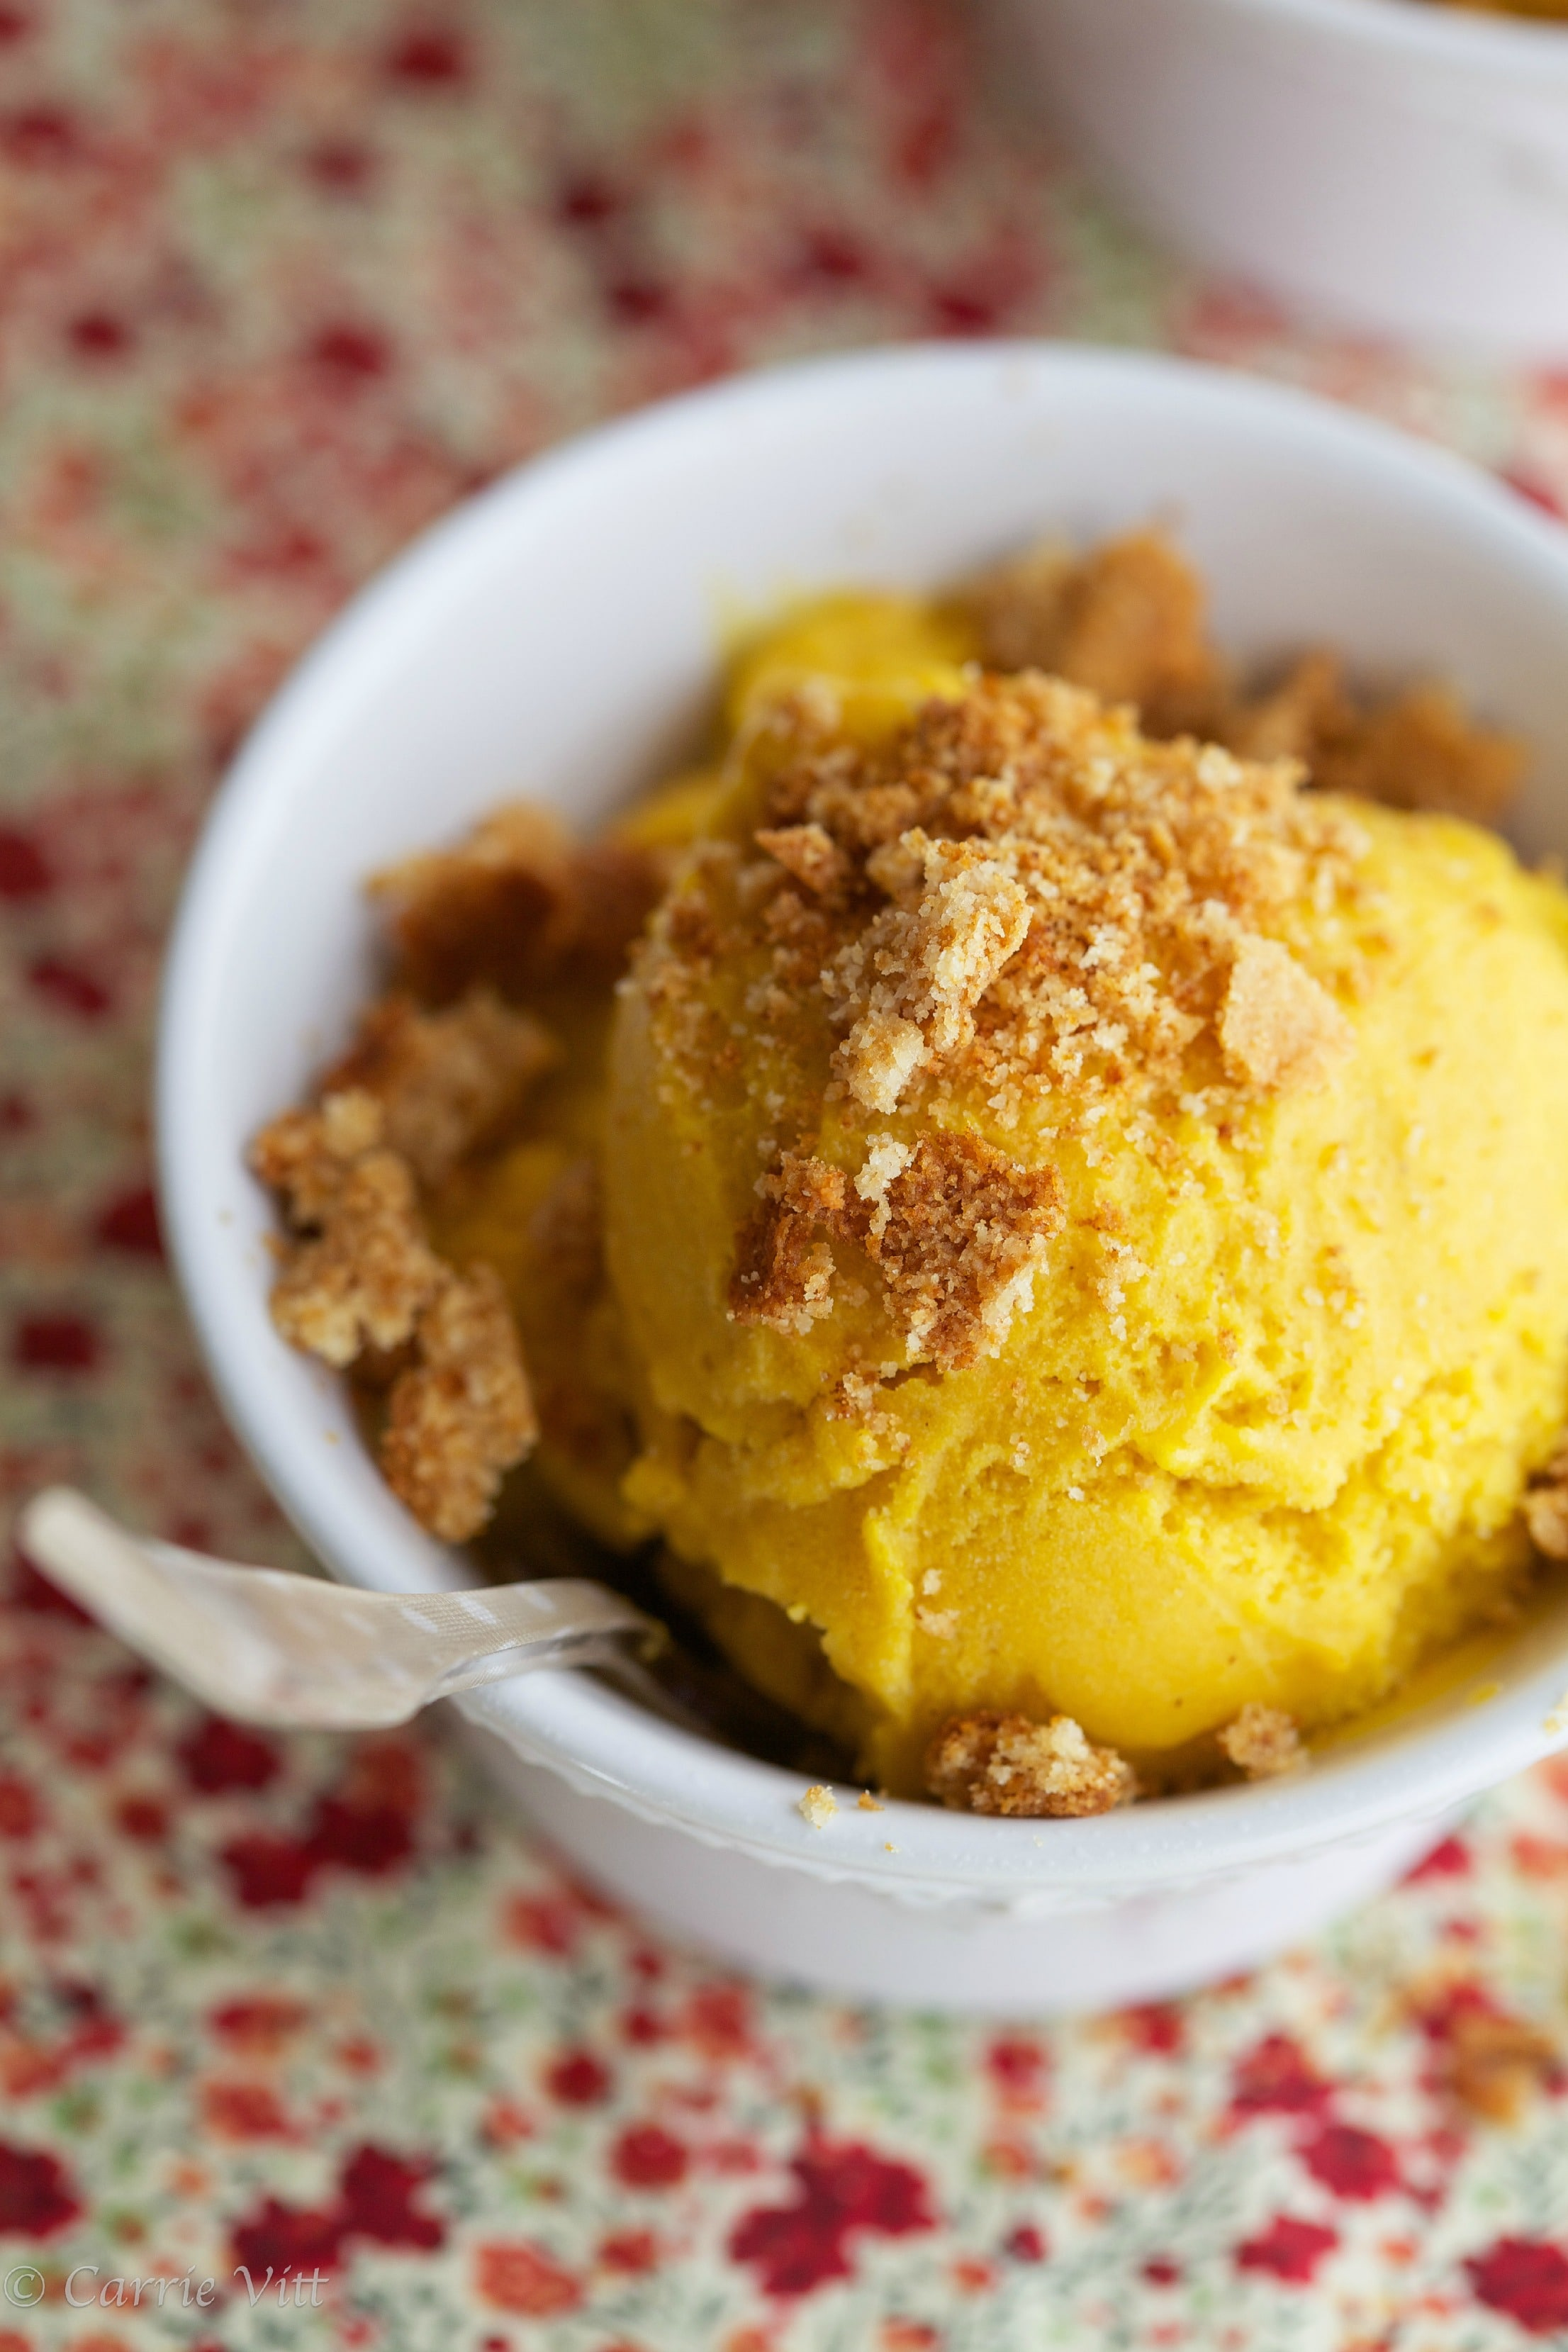 Pumpkin Ice Cream with Graham Cracker Crumbles (Dairy Free, Paleo, Gaps, Grain Free)